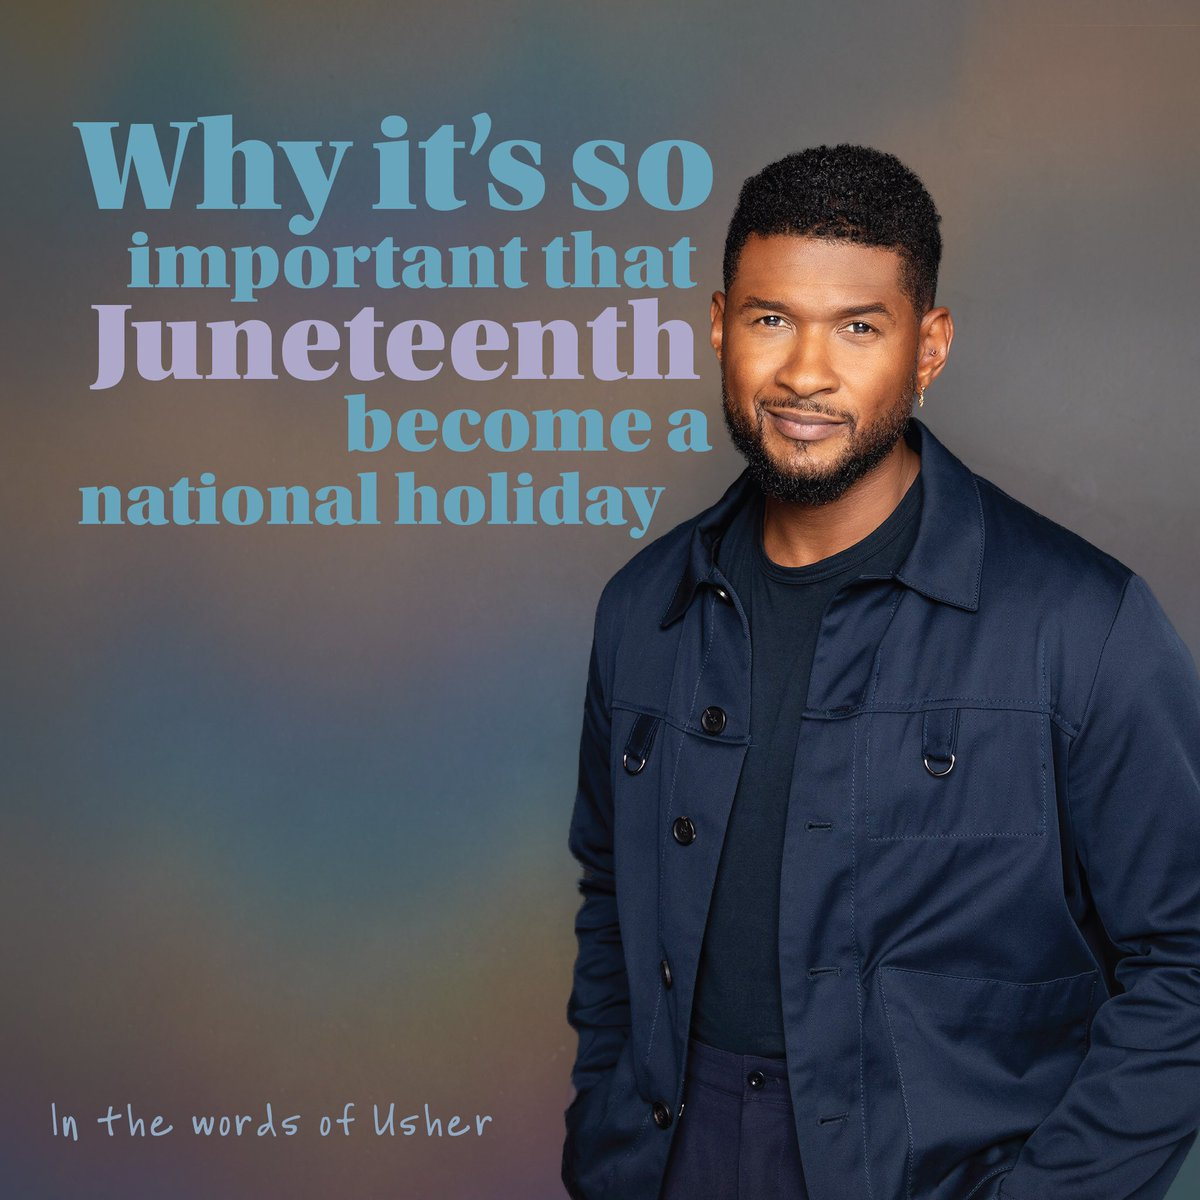 .@Usher: Why it's so important that Juneteenth become a national holiday (June 2020 Op-Ed in the @washingtonpost)